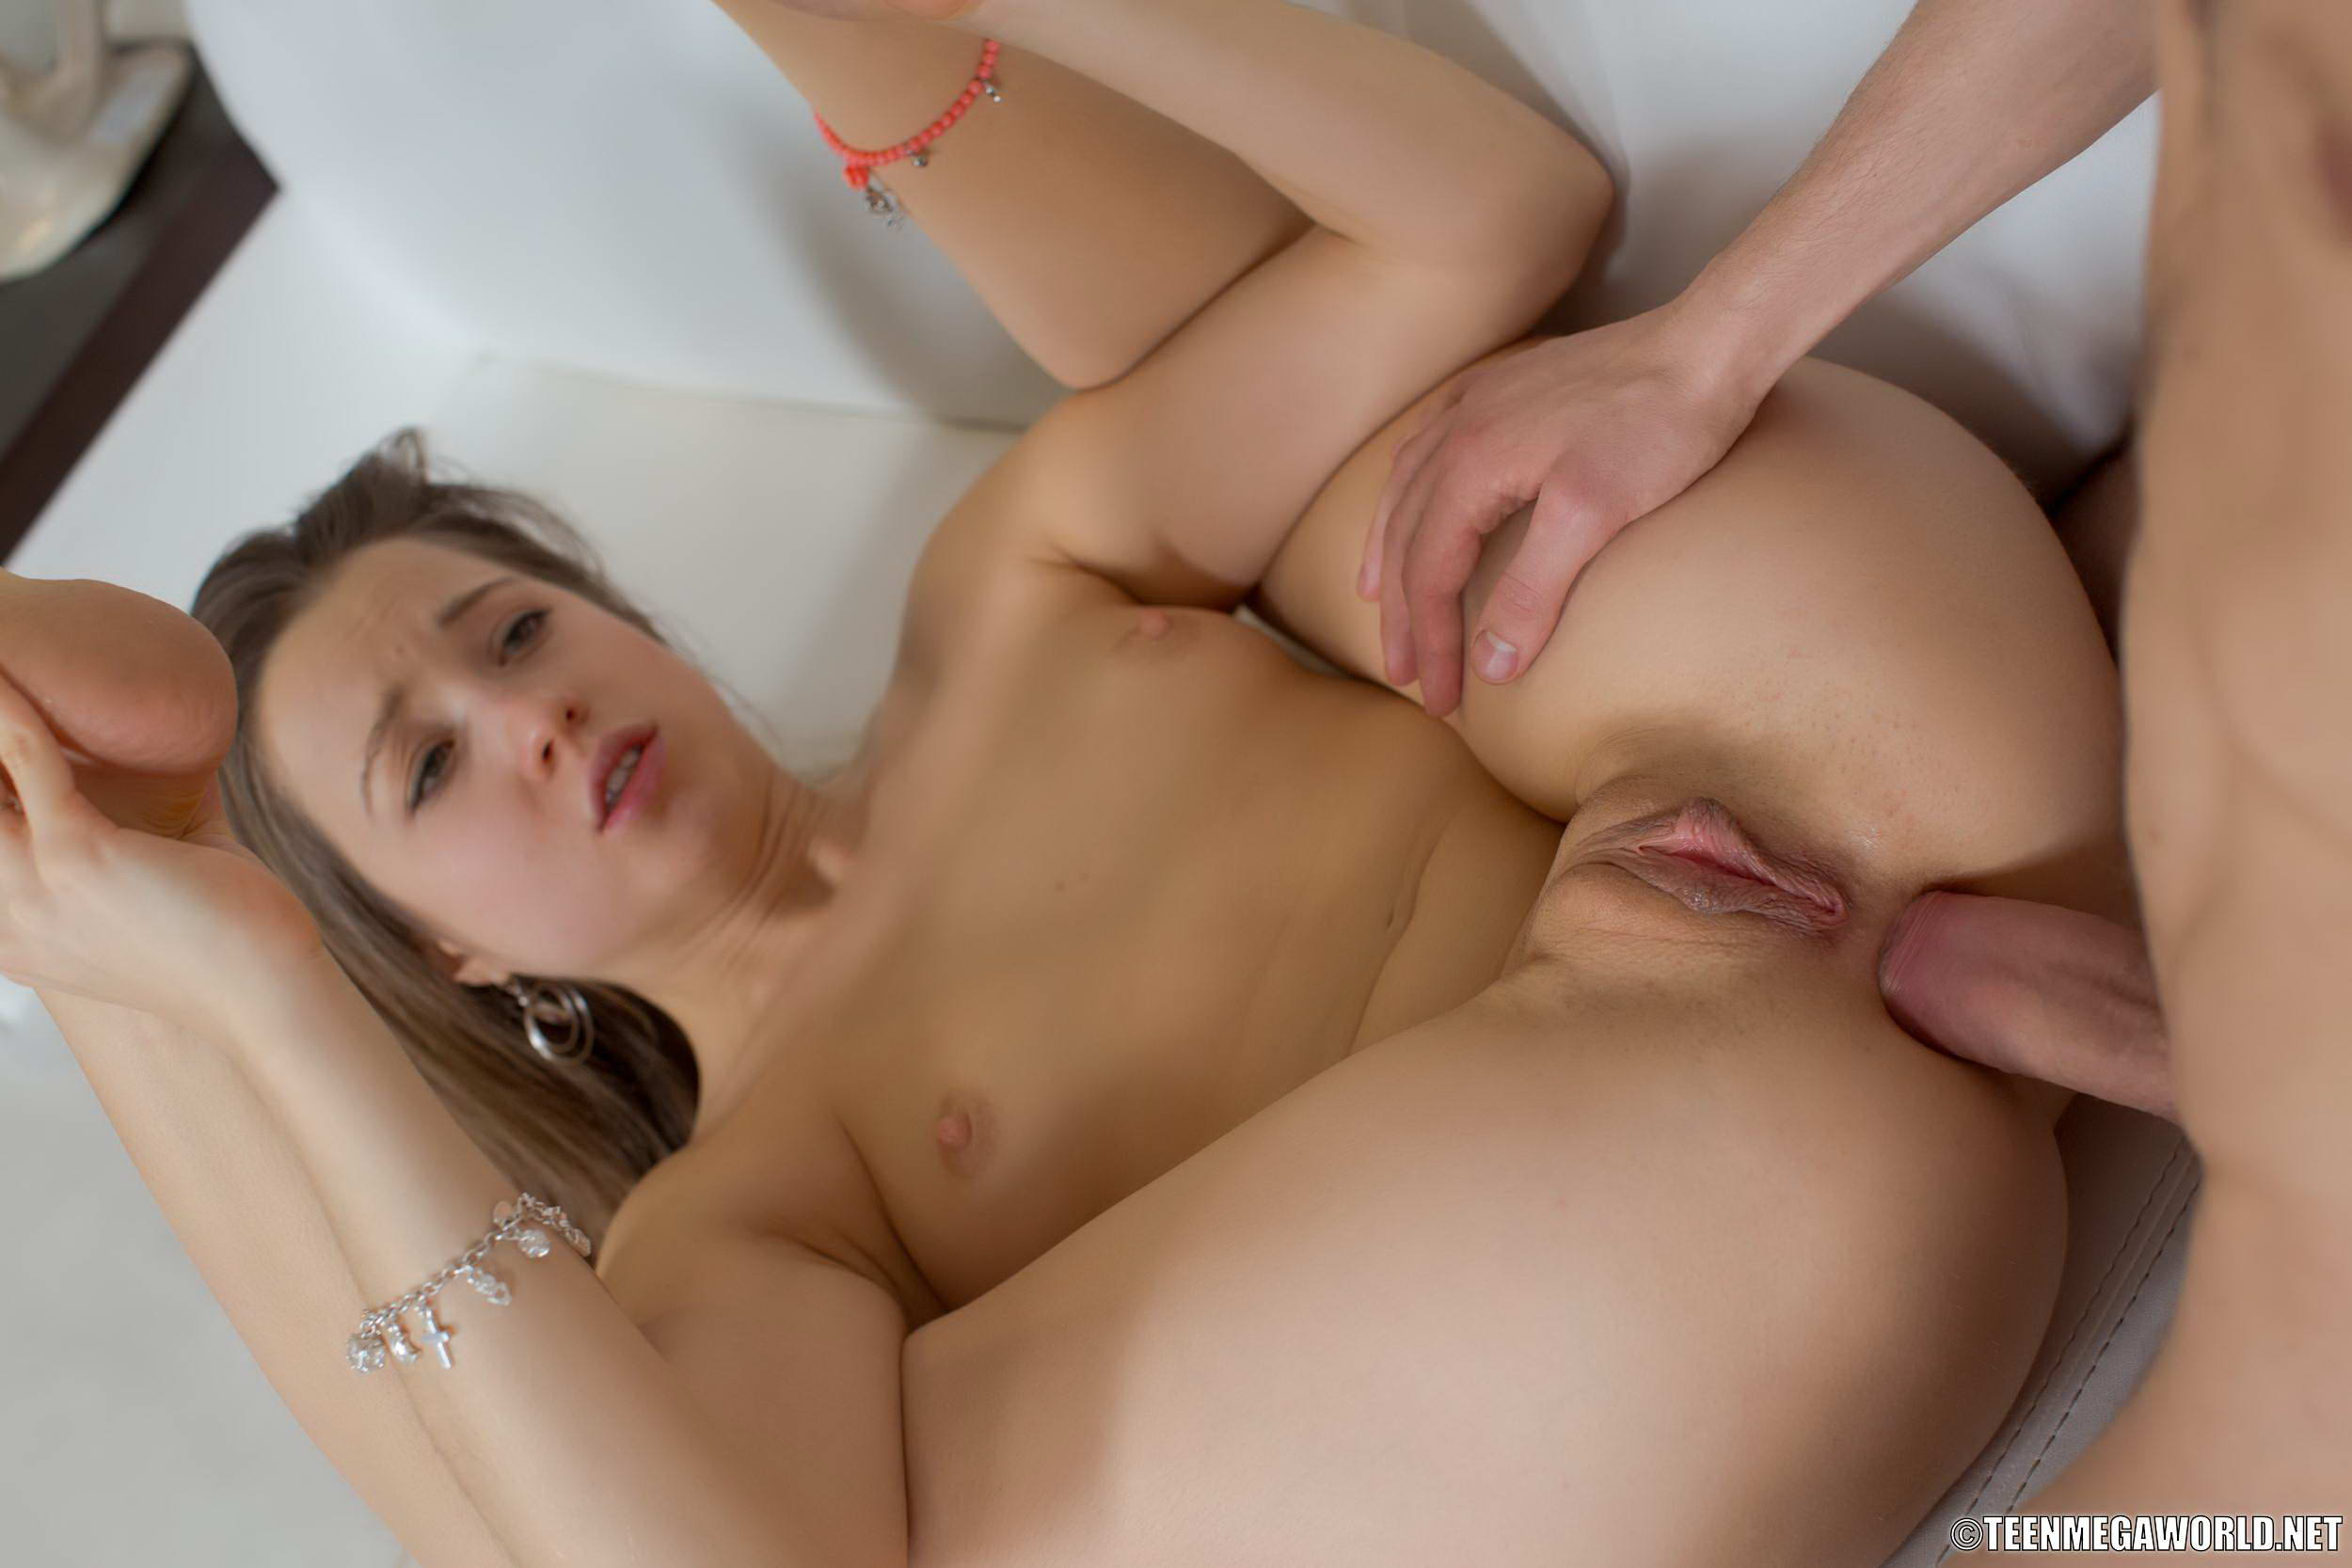 Isabella amore a skinny and flexible horny girl - 1 5